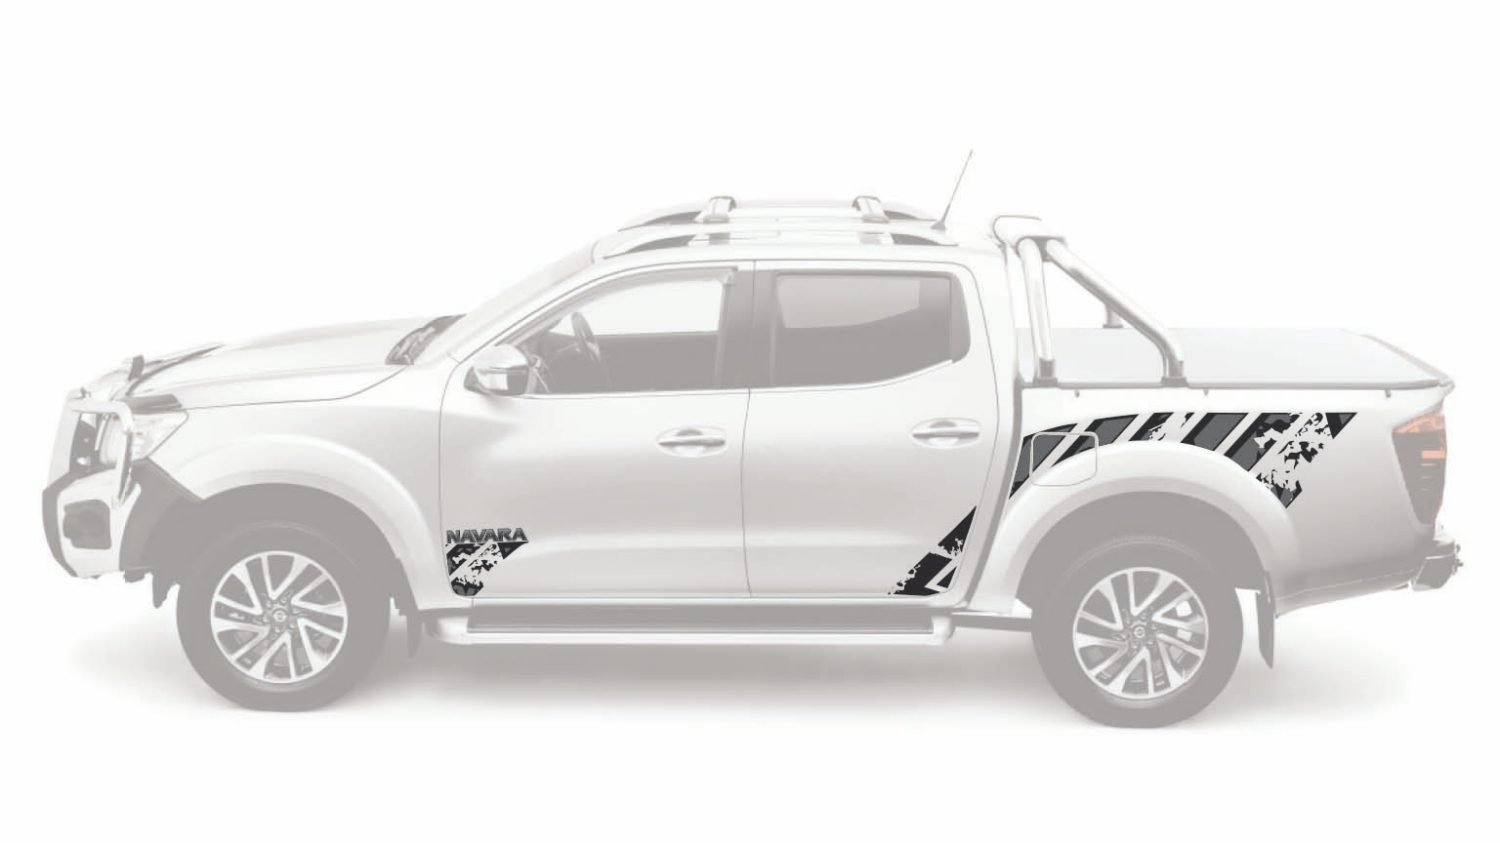 Navara decal kit 3